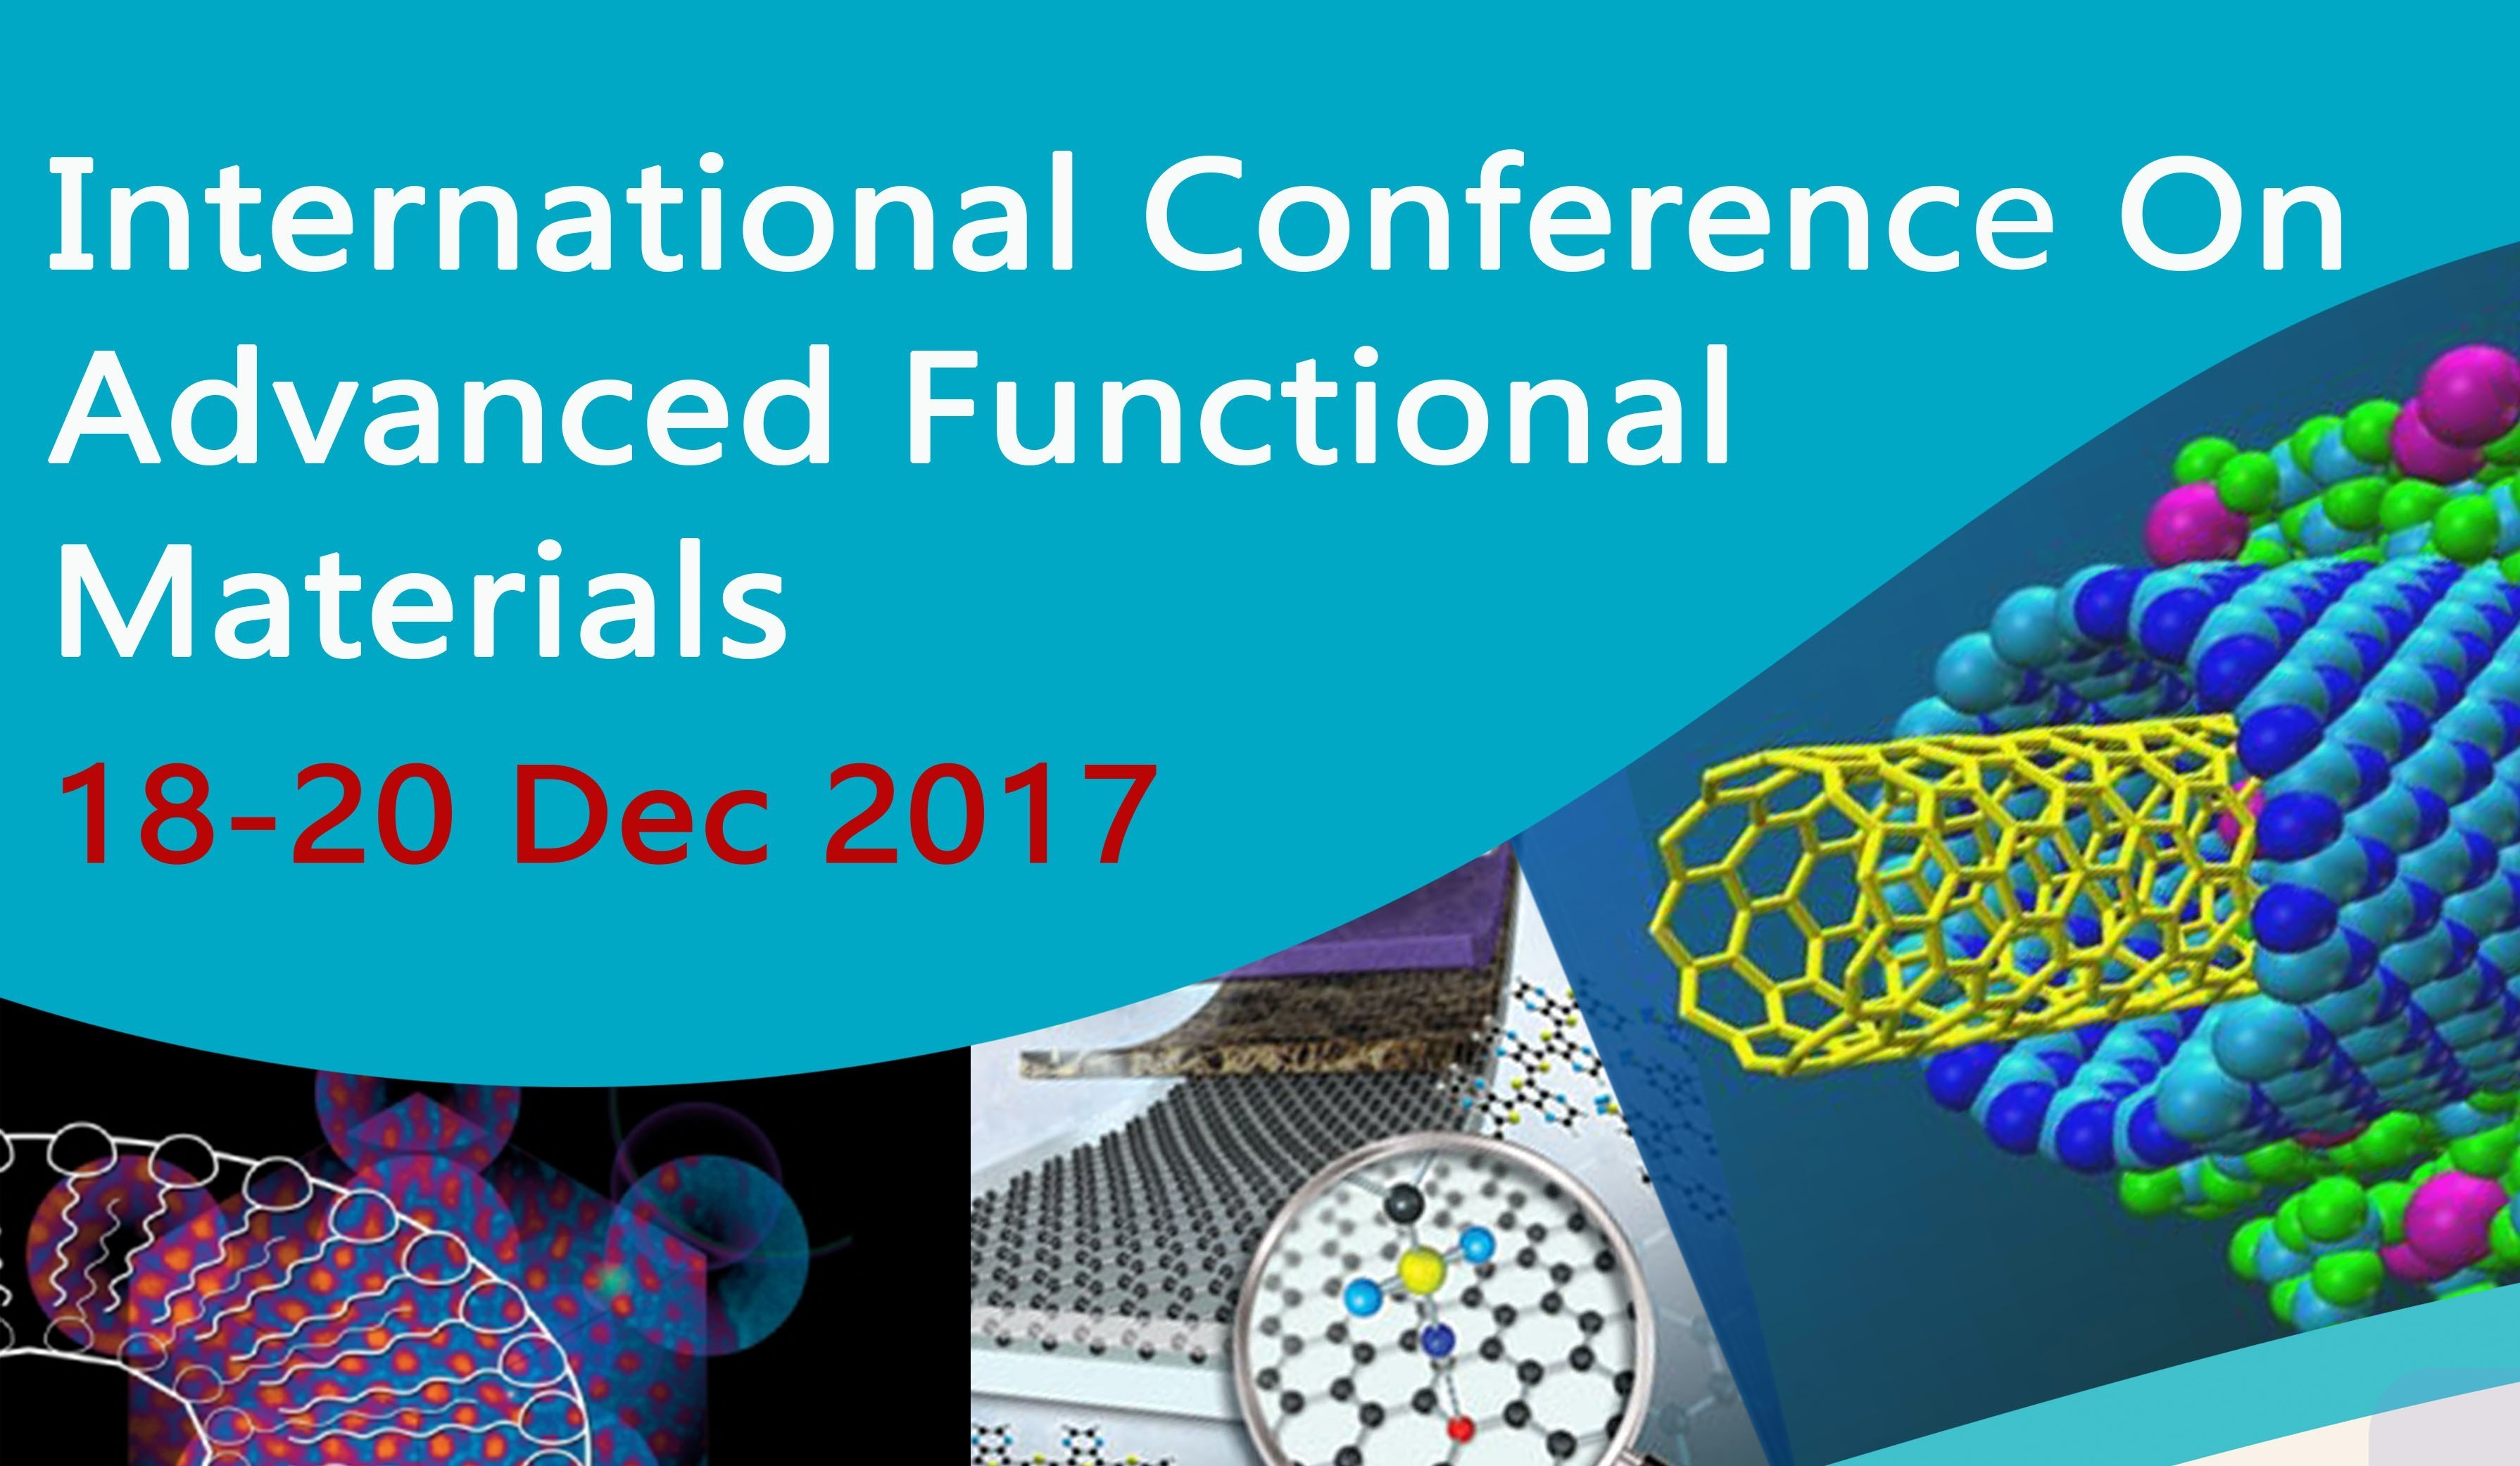 International Conference on Advanced Functional Materials